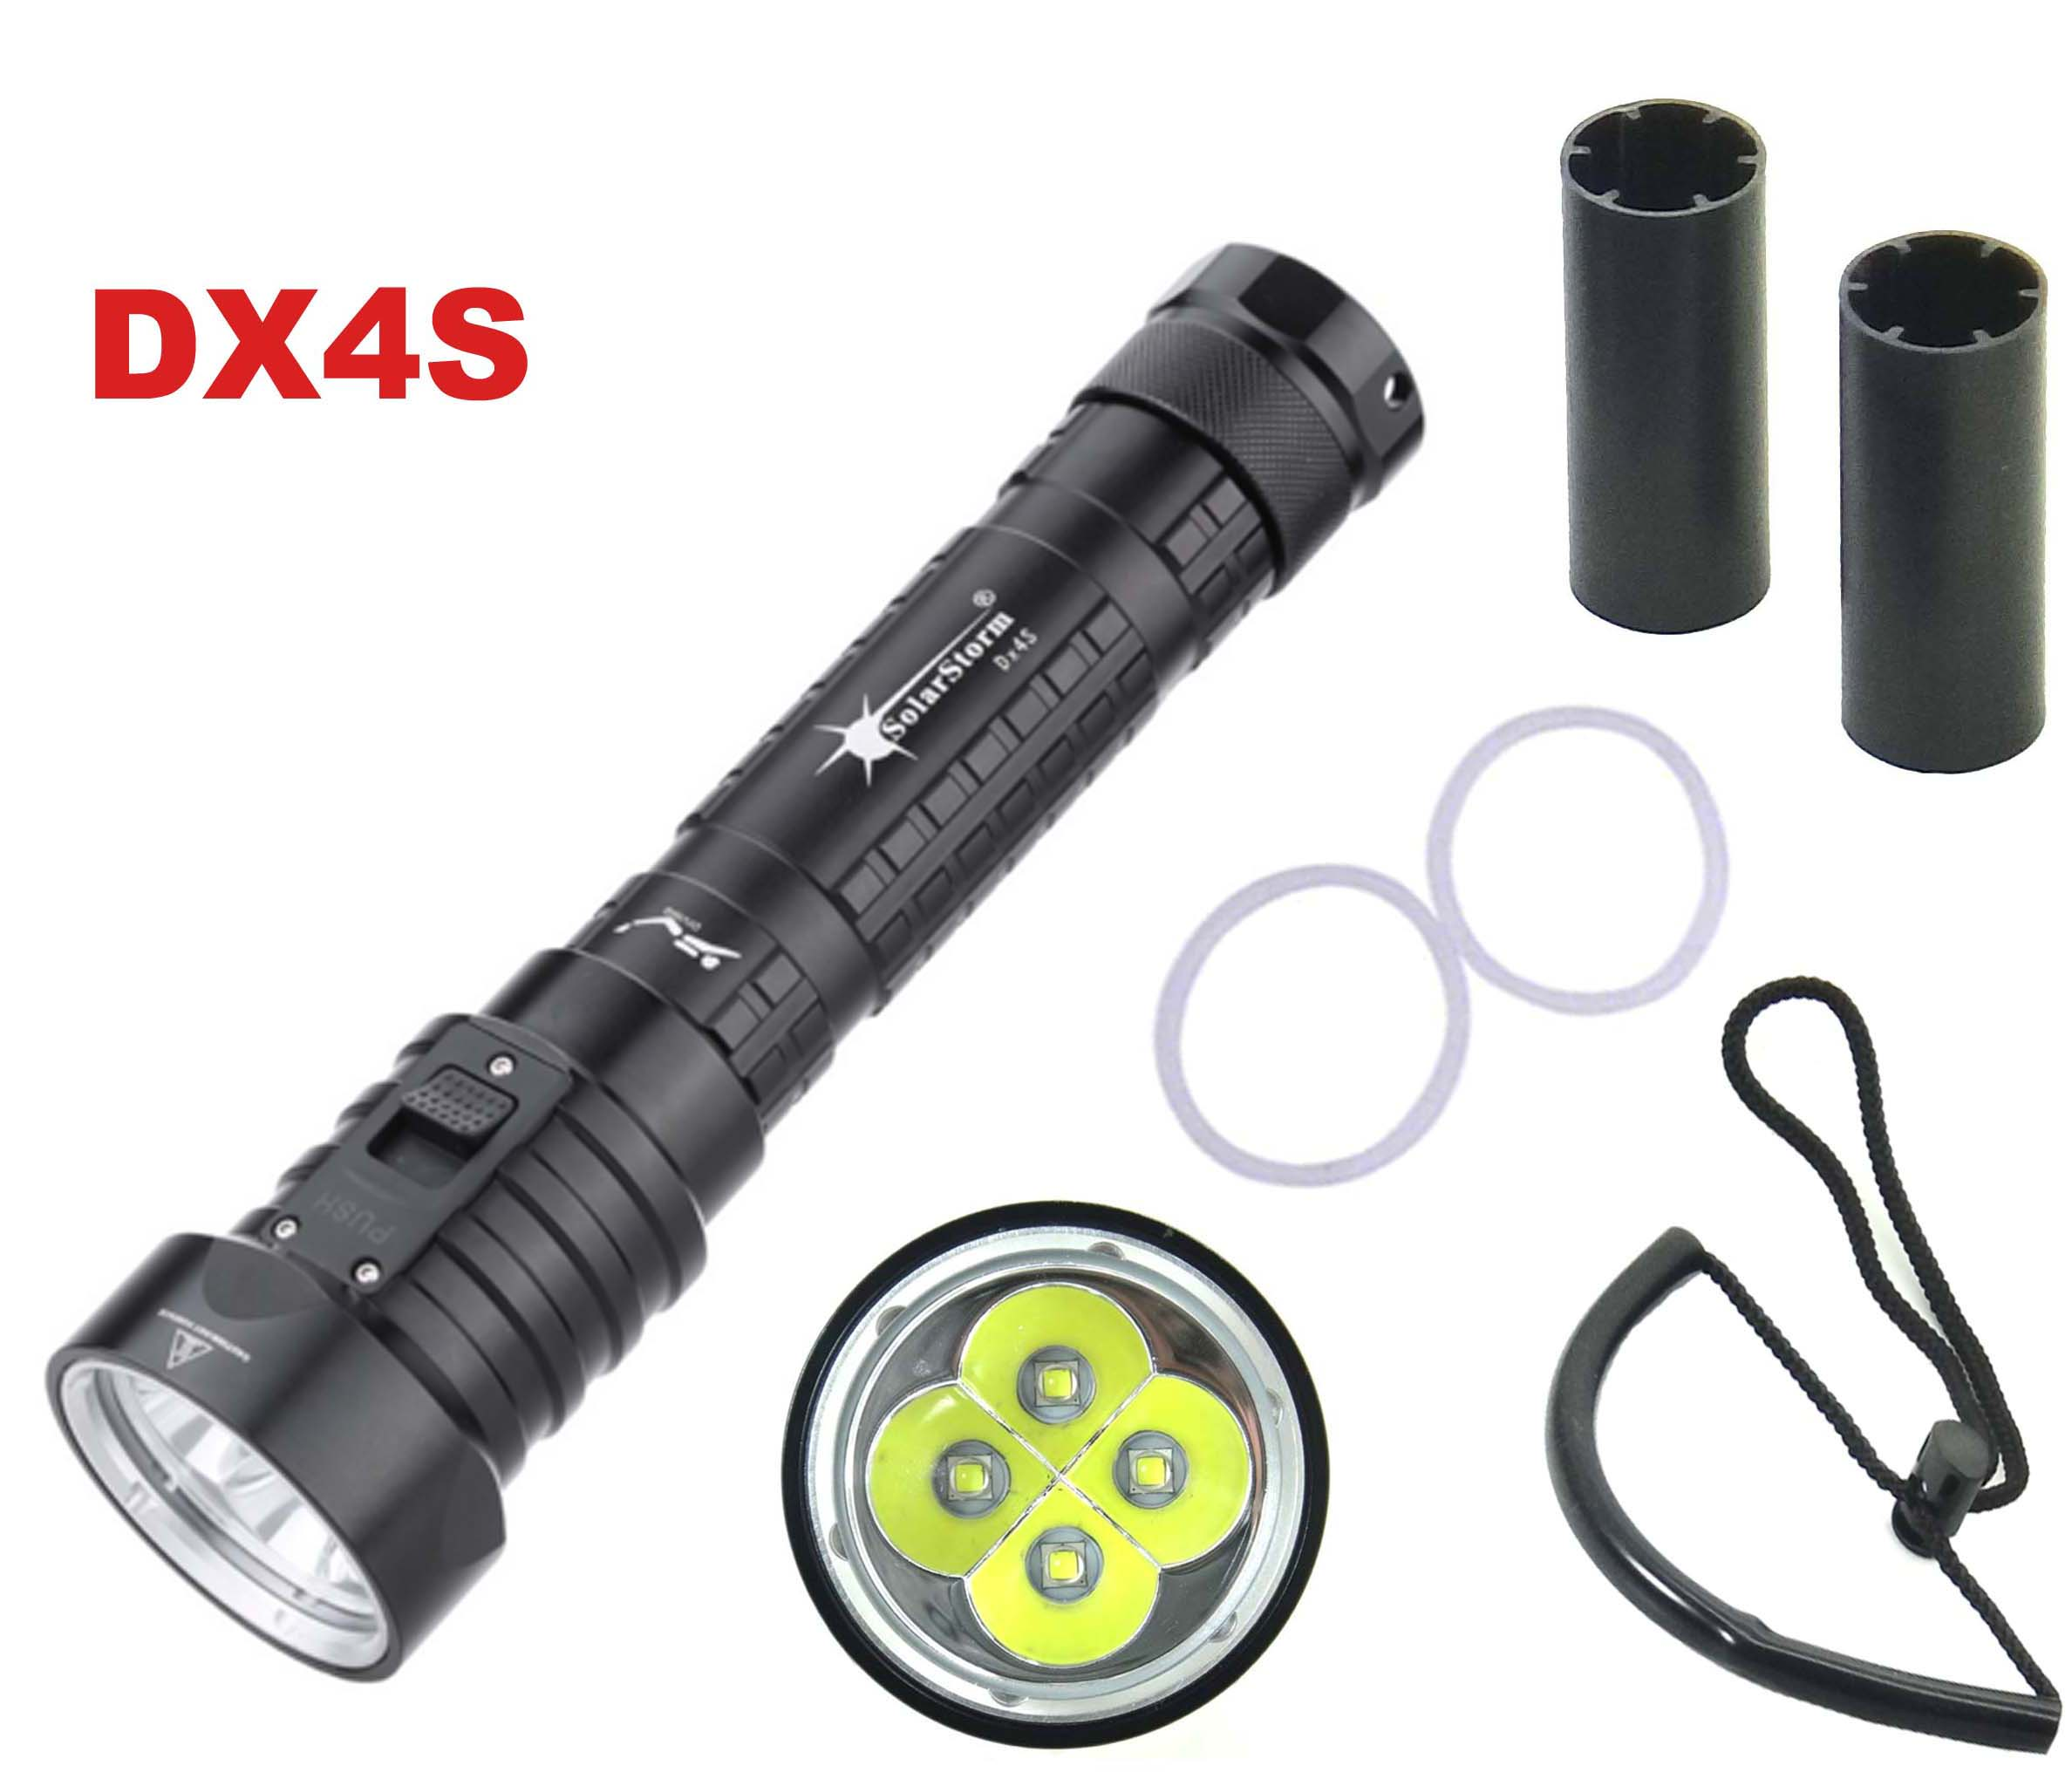 Solarstorm DX4S LED Diving Flashlight 4x CREE L2 4L2 Underwater 18650 26650 Torch Brightness Waterproof 100m Light Led Torch scuba diving flashlight dx4s underwater hunting torch waterproof dive lamp 4x cree xm l2 white light 18650 26650 led torch